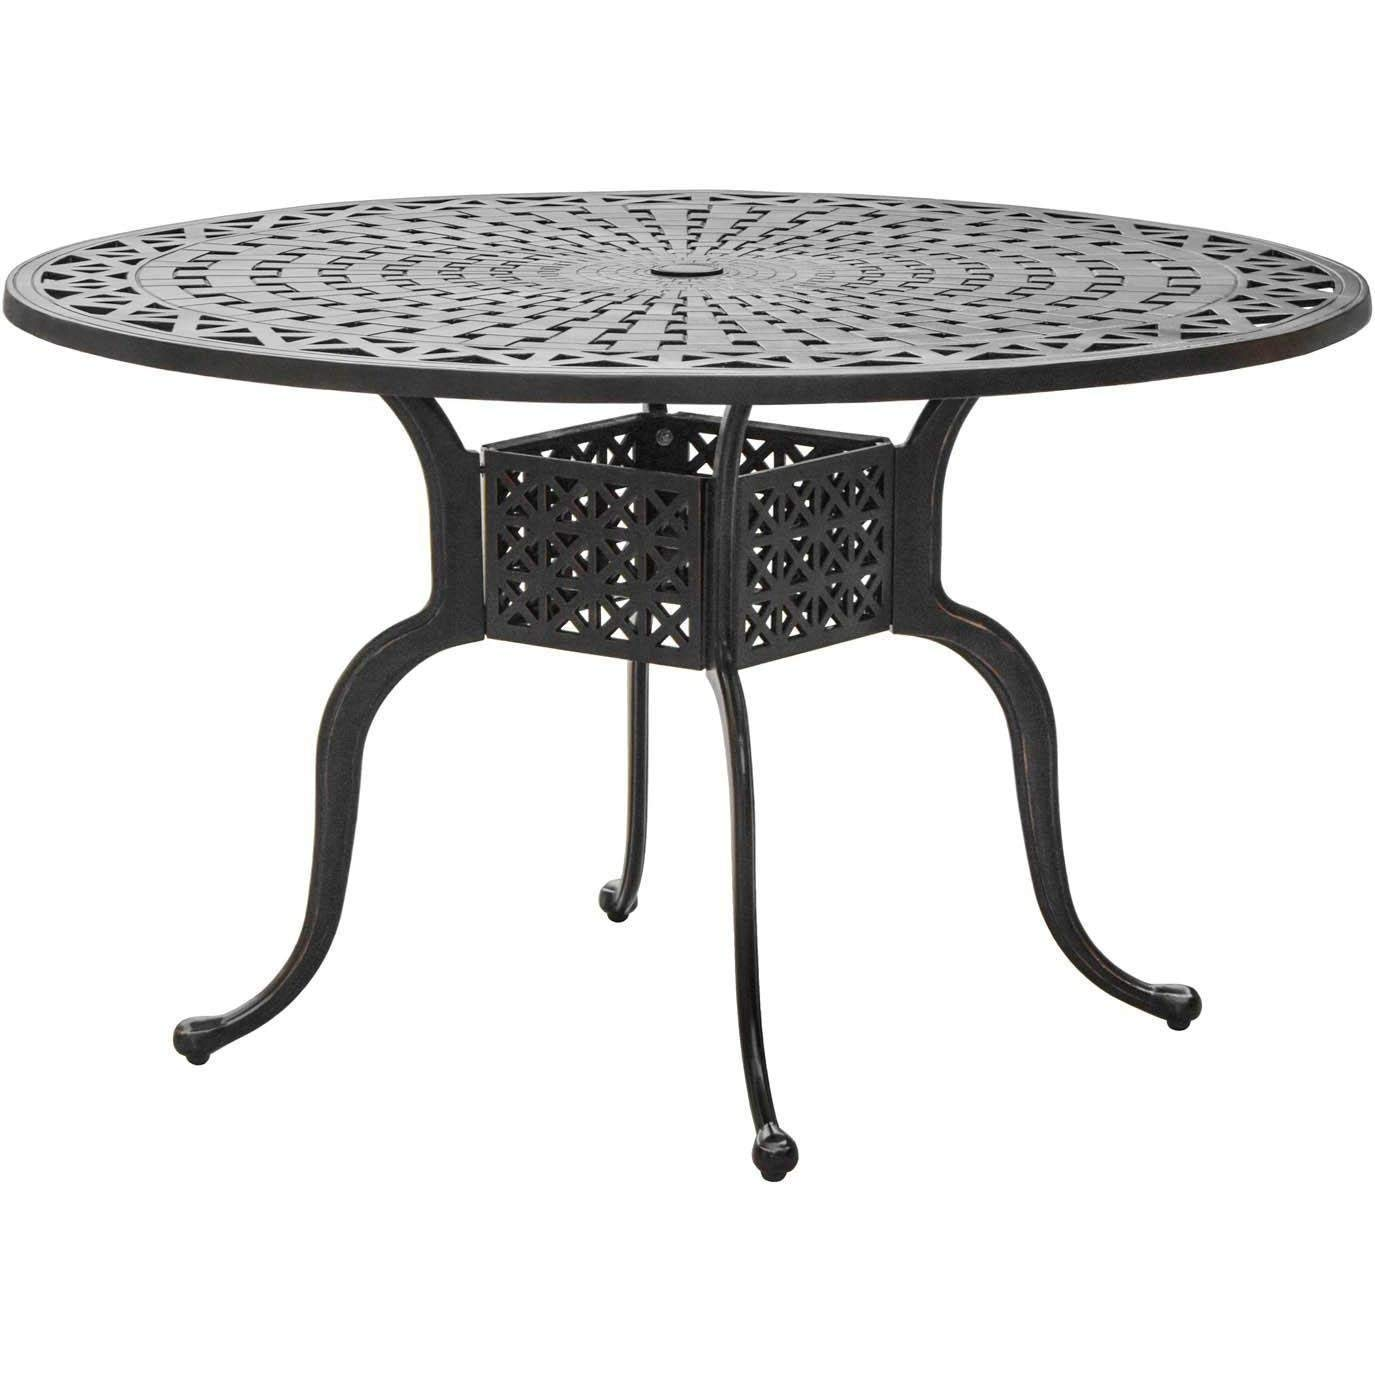 mosaic designs for outdoor walls find zaltana accent table get quotations lakeview monde inch round cast aluminum dining room essentials lamp teal occasional chair long pier one